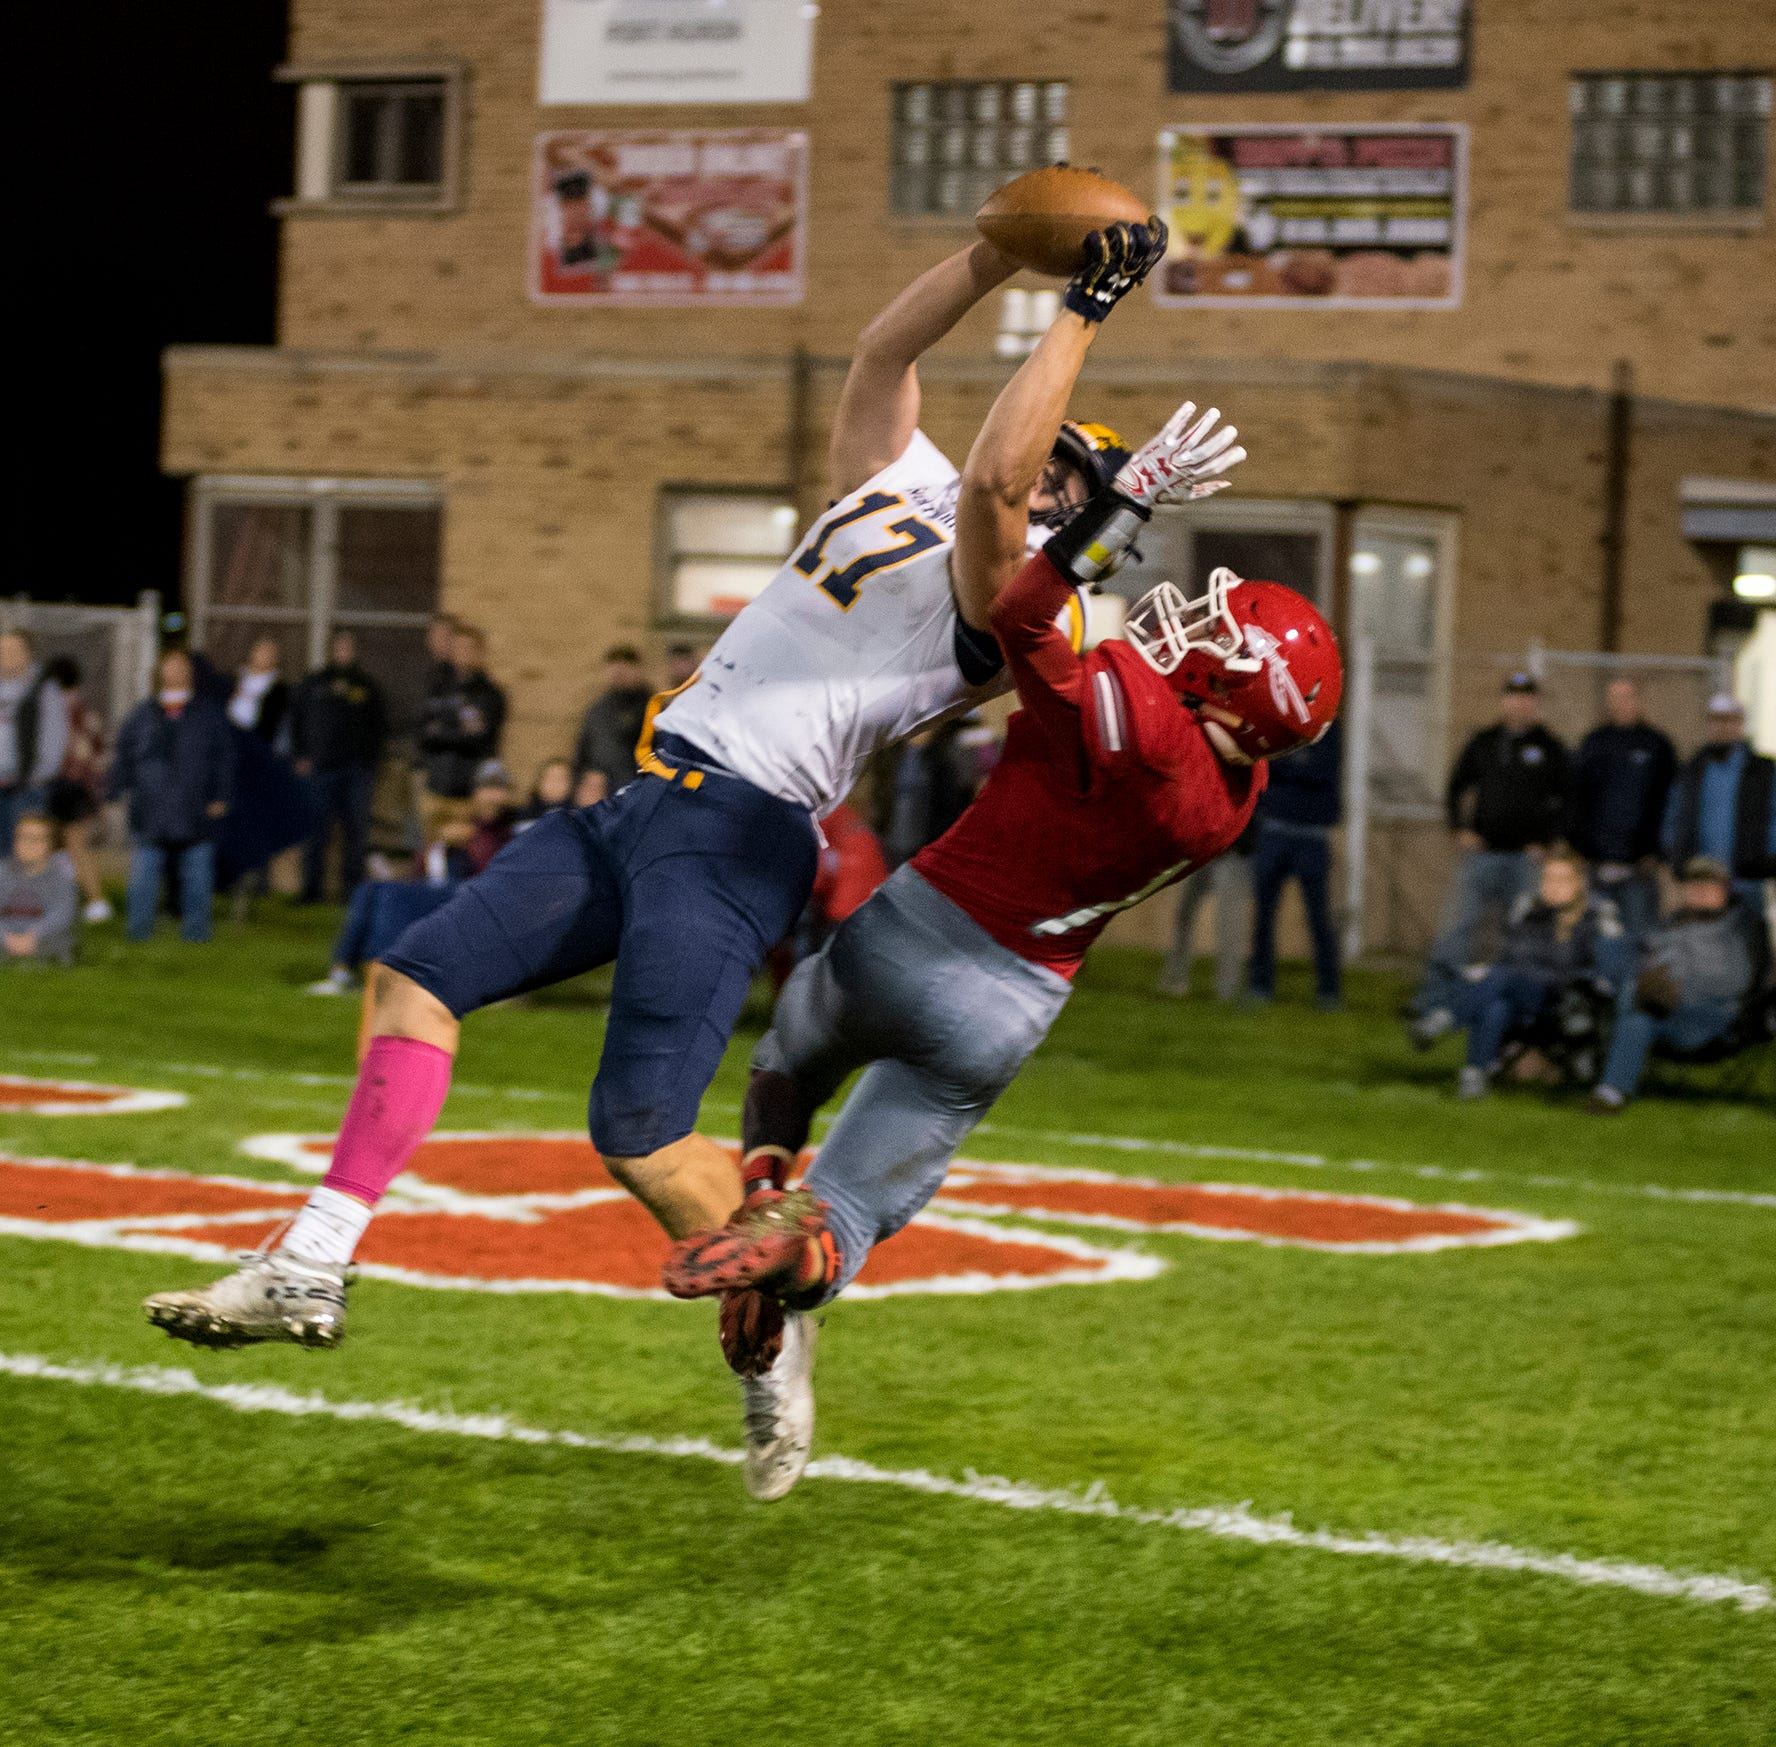 Port Huron Northern's Braiden McGregor will play in prestigious Adidas All-American Bowl